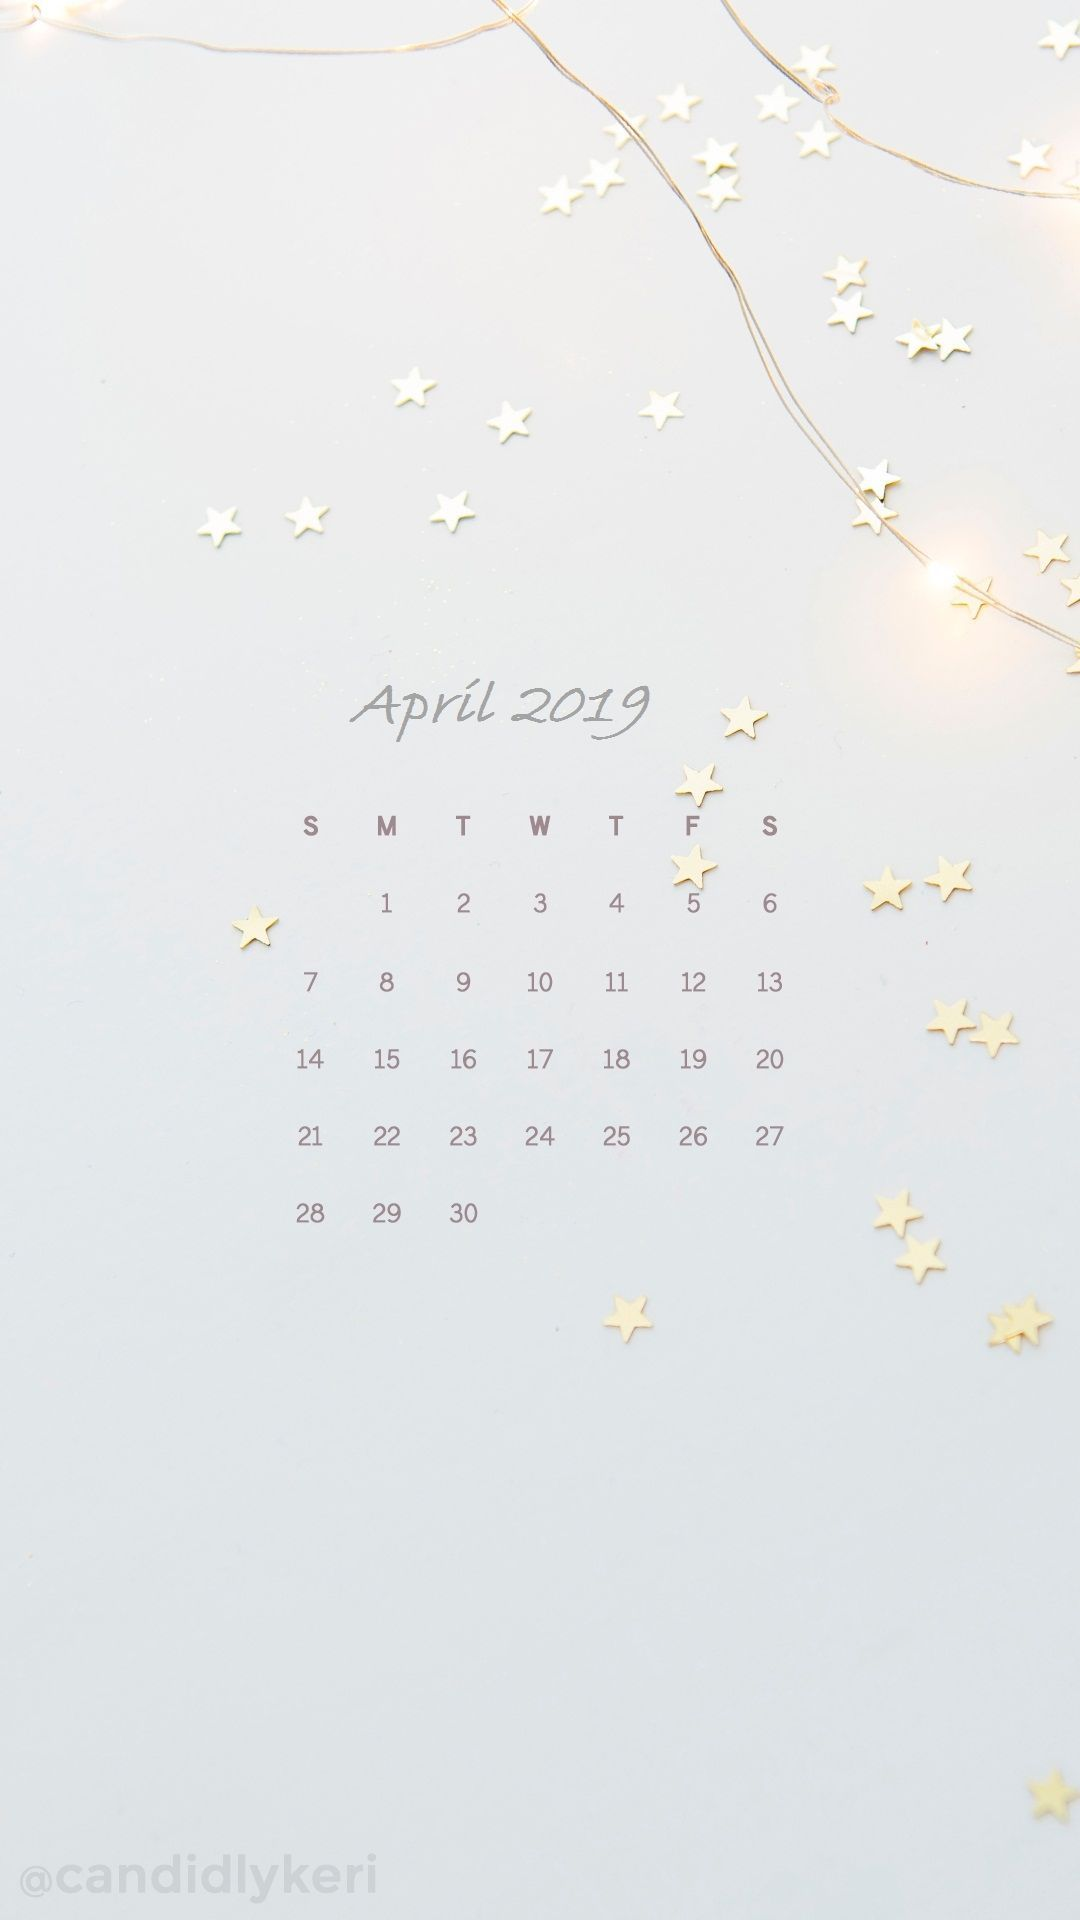 8 Wonderful April Wallpaper High Resolution For Your Android Or